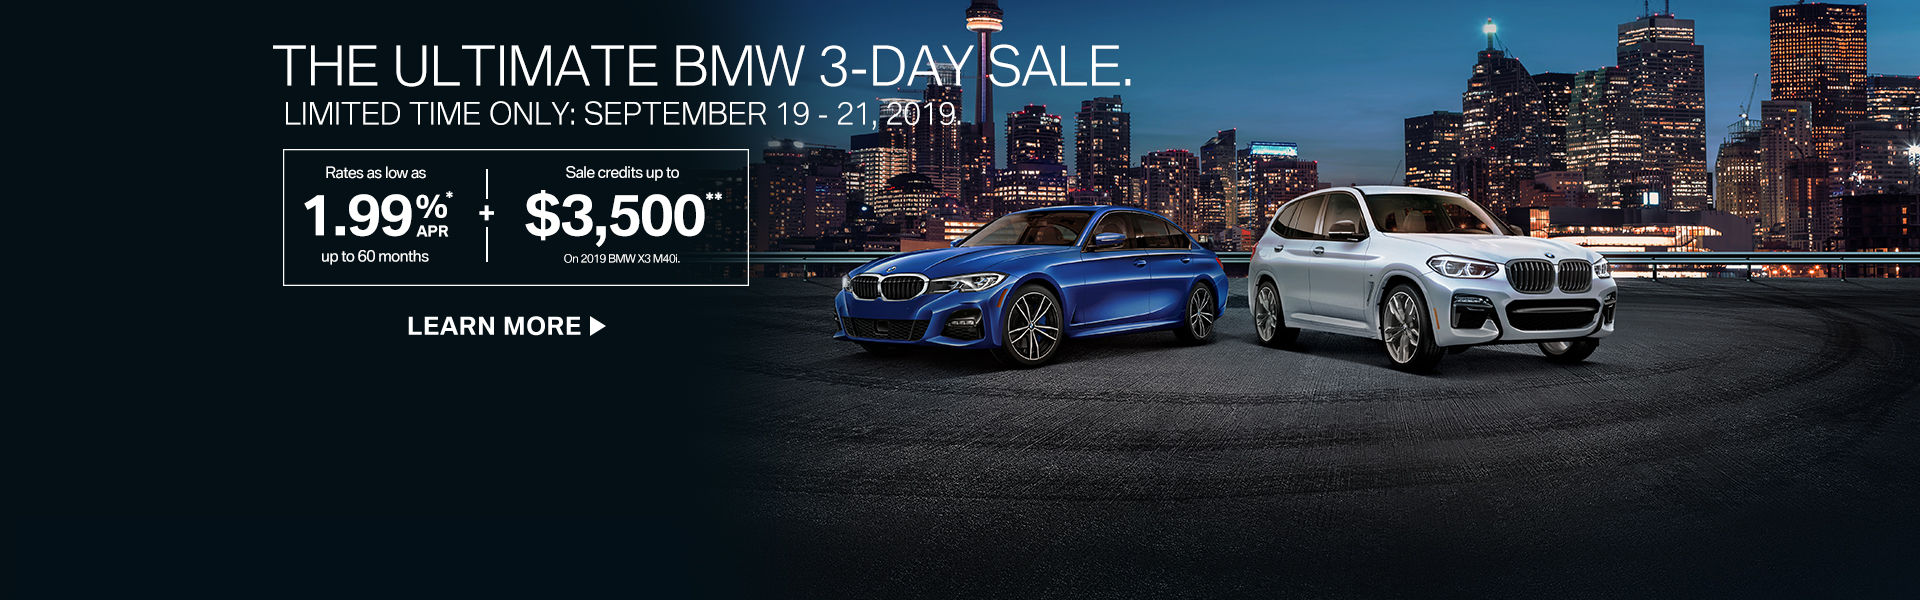 The Ultimate 3-Day Sale